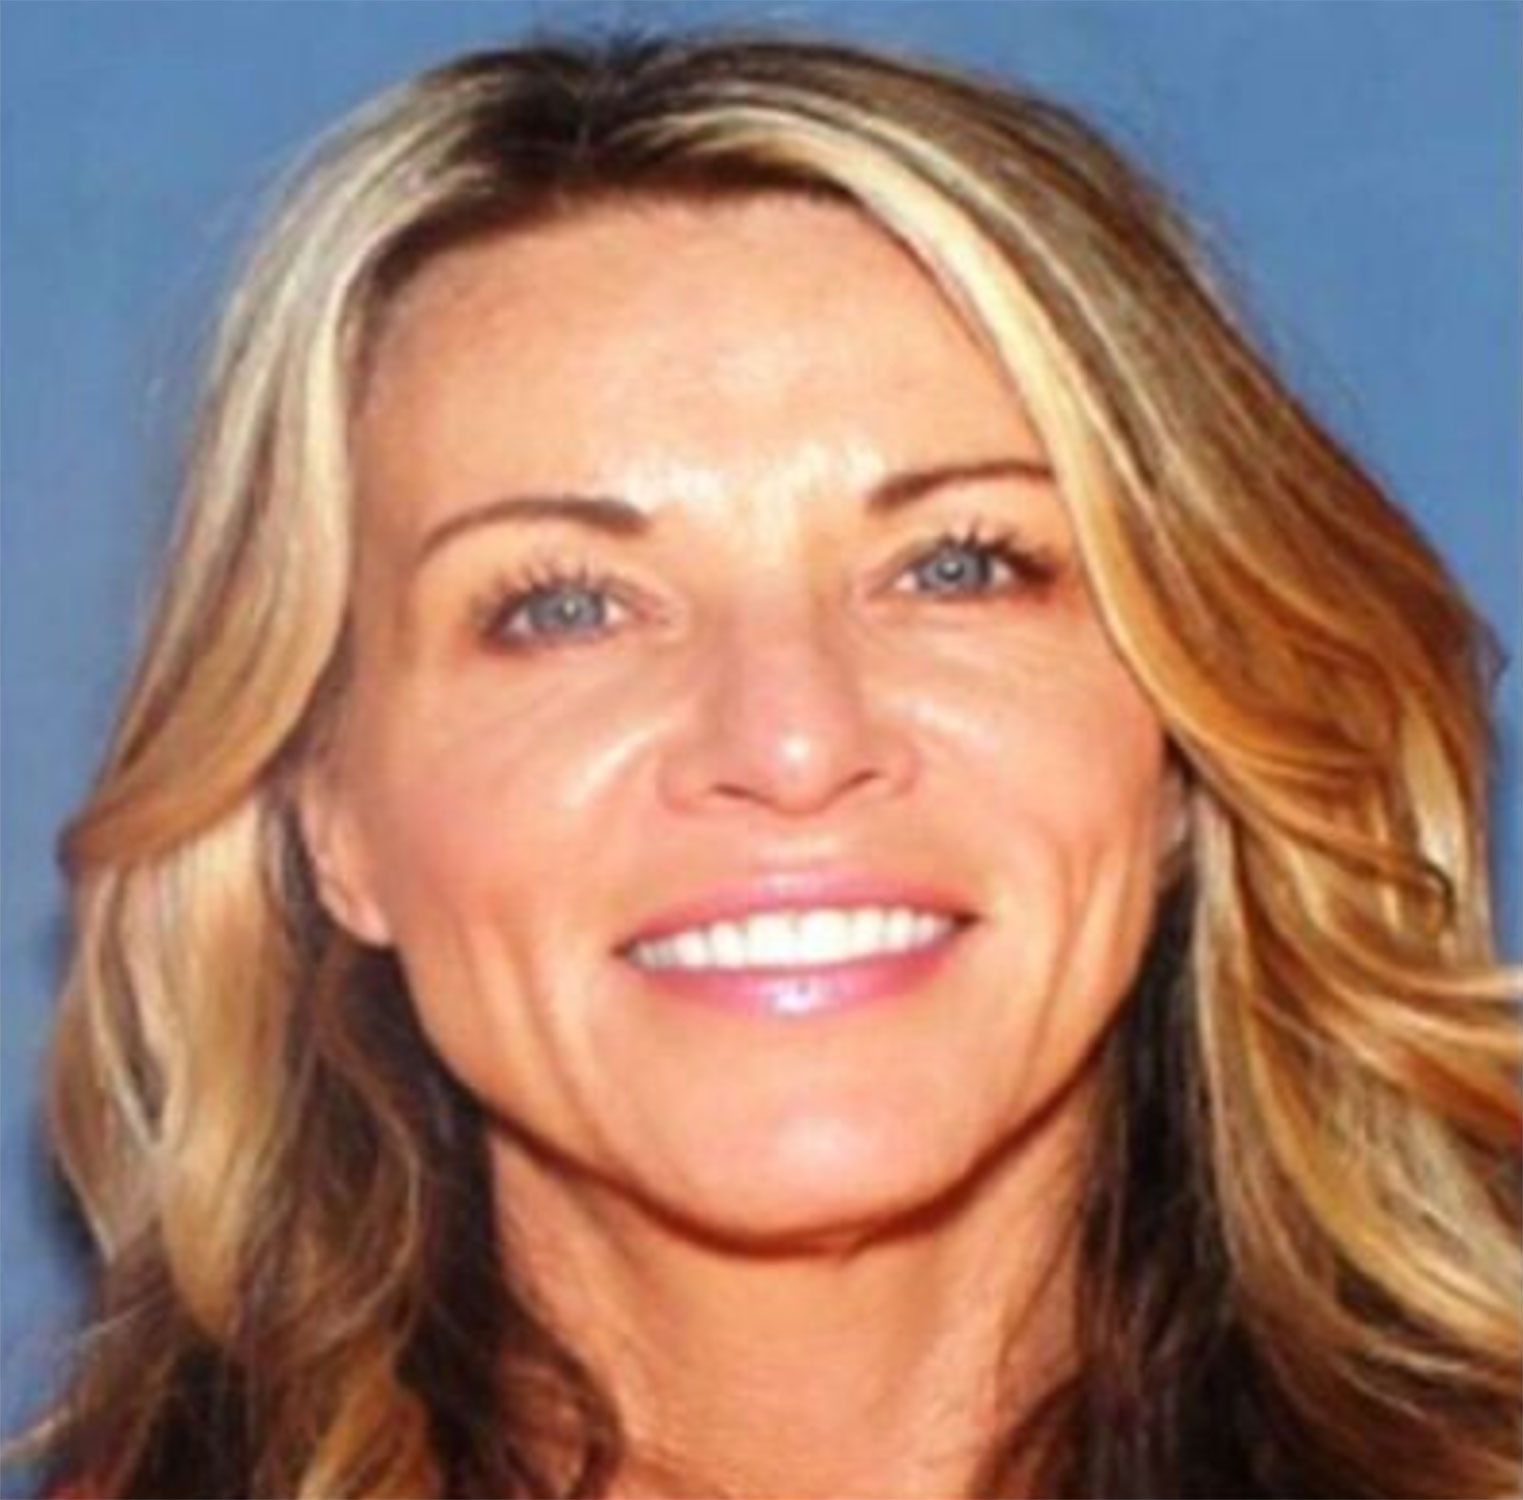 'Cult Mom' Lori Vallow and Husband Could Face Murder, Conspiracy Charges as Idaho AG Takes Over Investigation